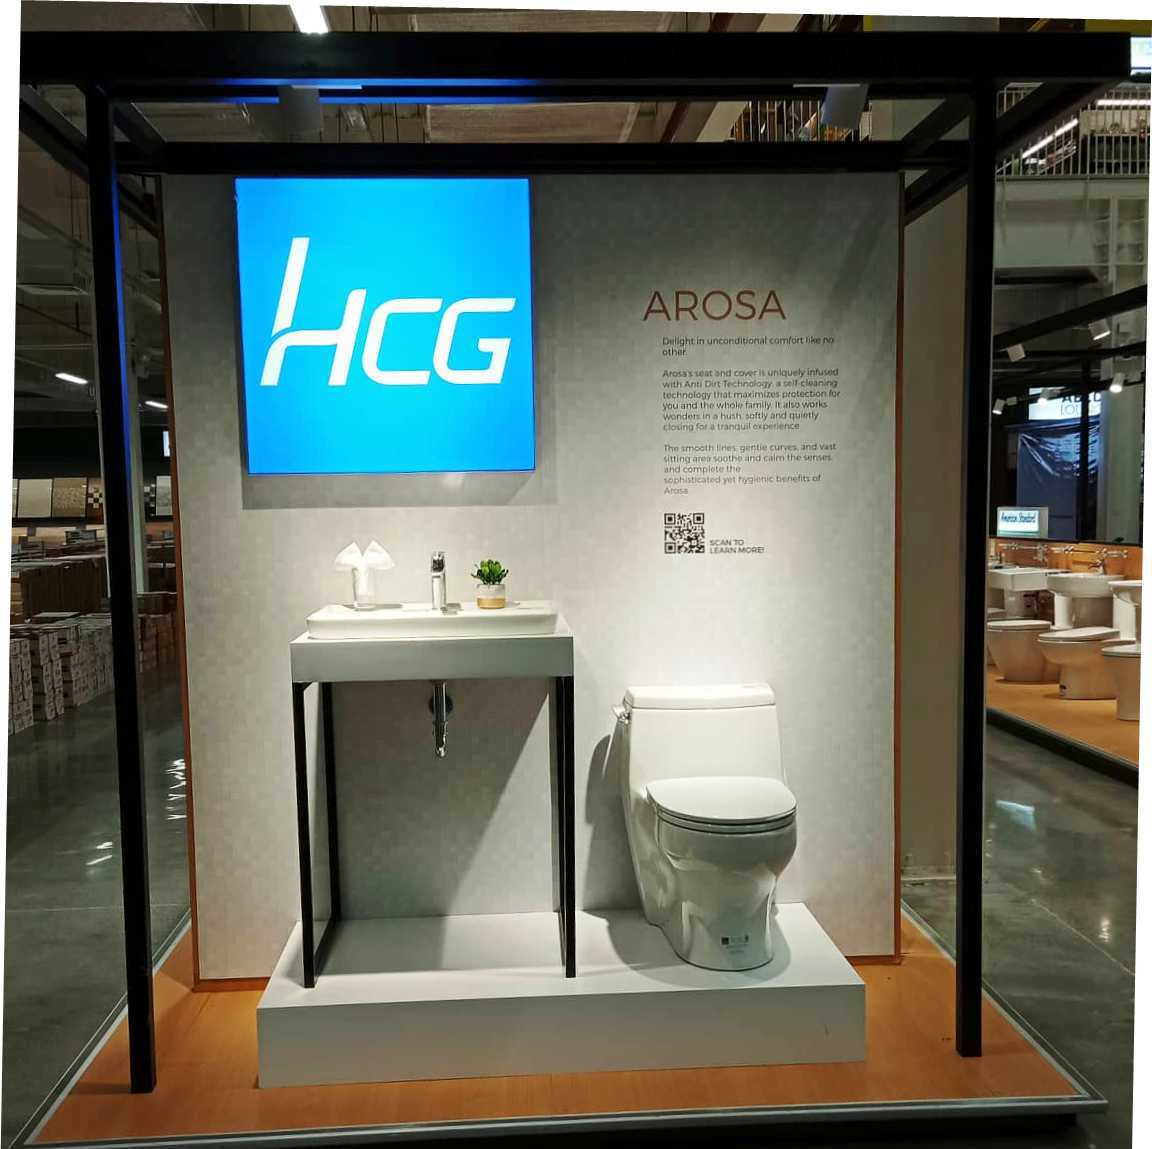 Arosa L6665countertop wash basin is paired with HCG's Arosa water closet